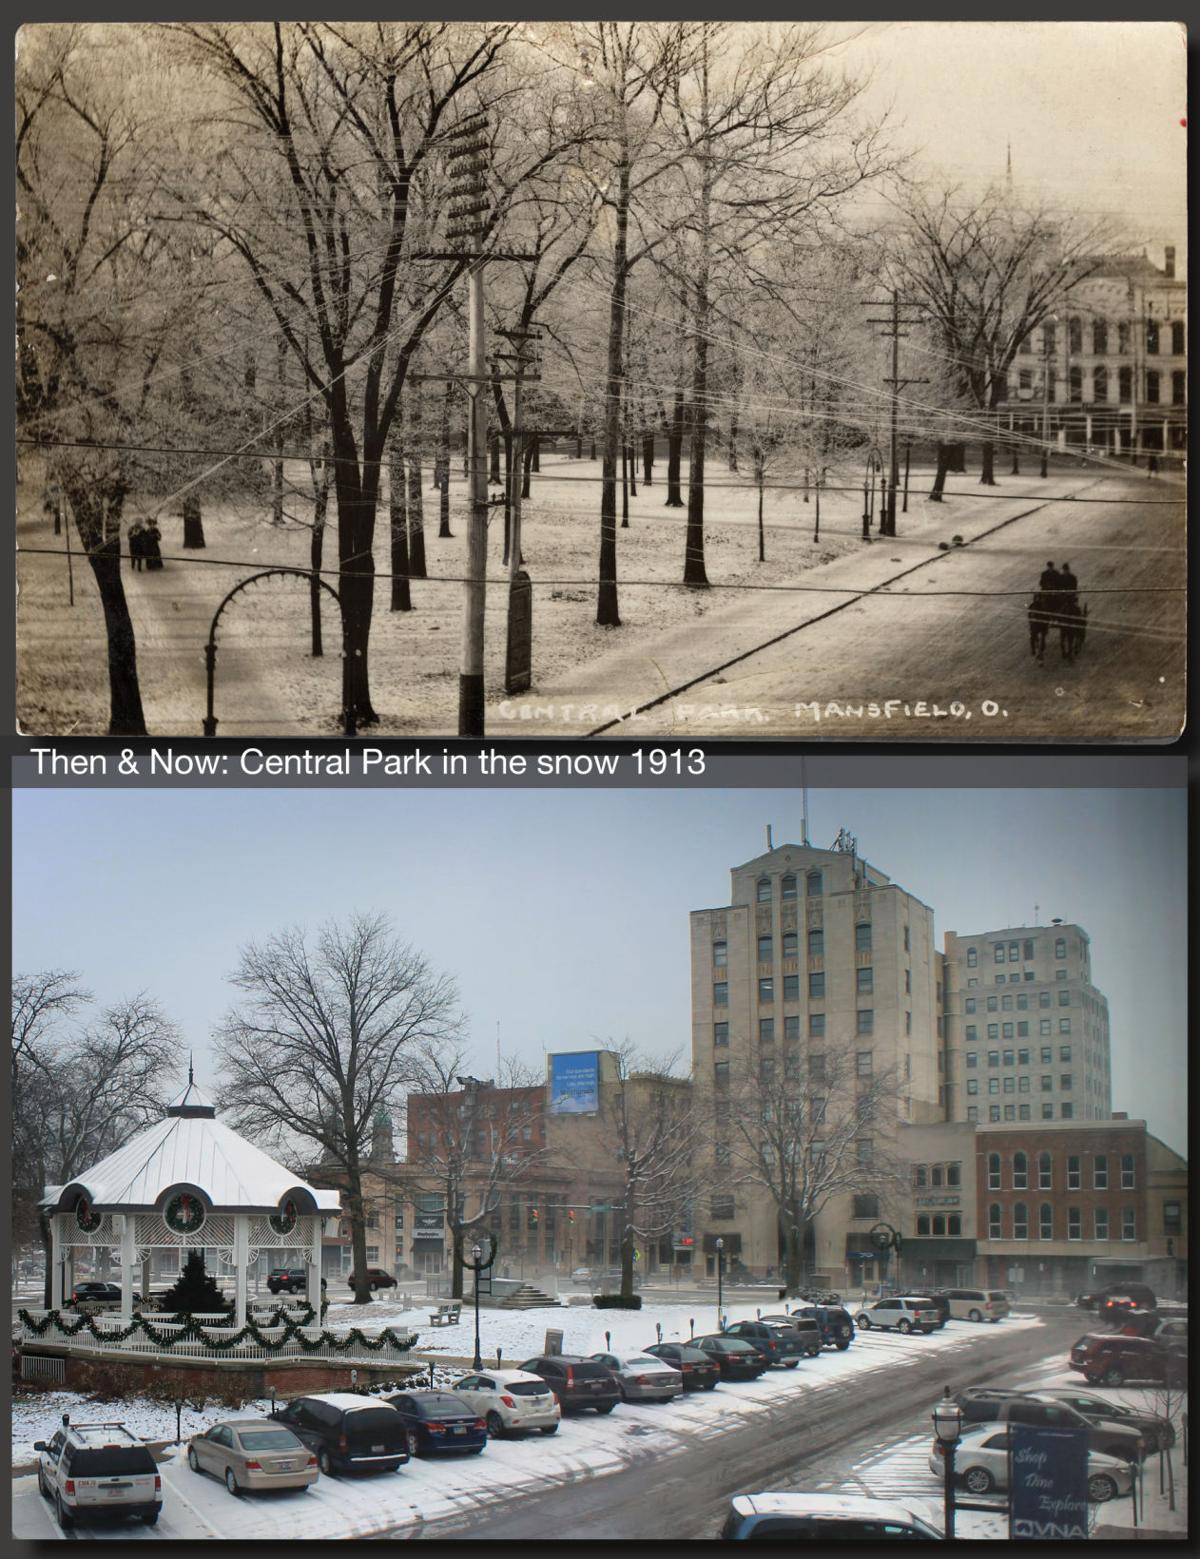 Then & Now: Central Park in the snow 1913